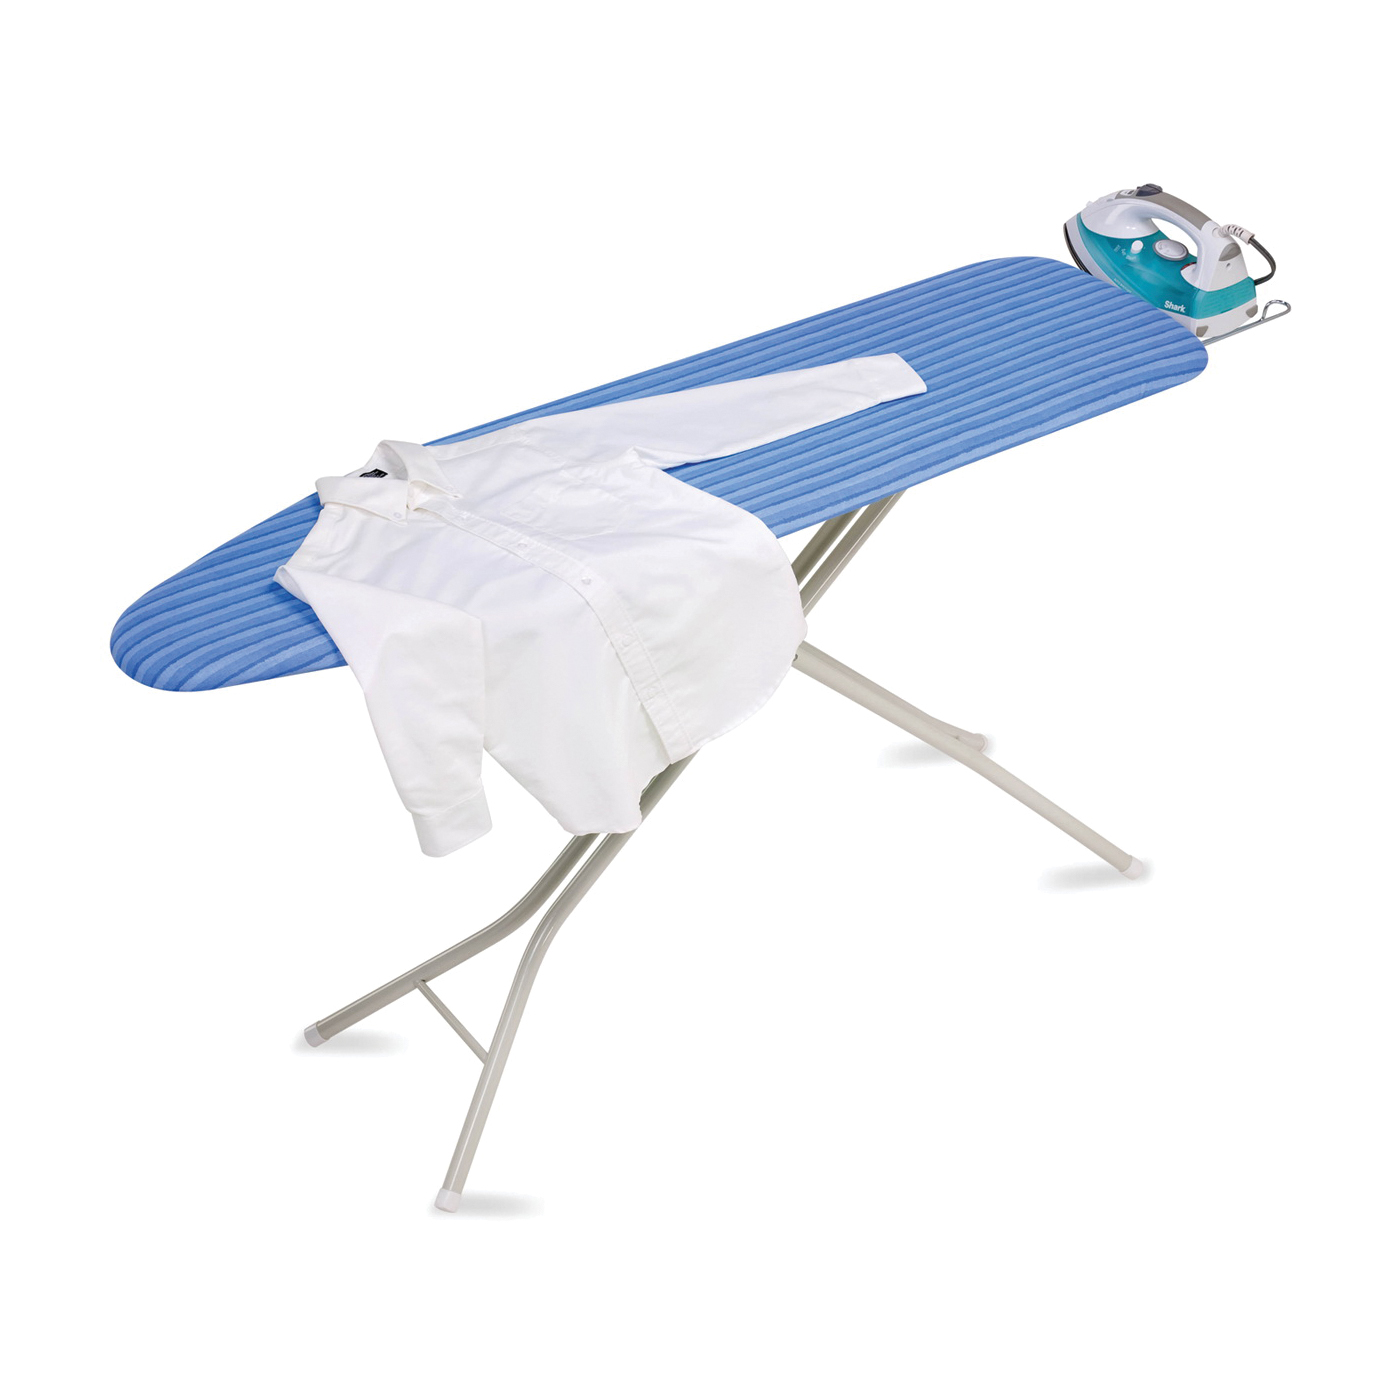 Picture of Honey-Can-Do BRD-01956 Ironing Board, Blue/White Board